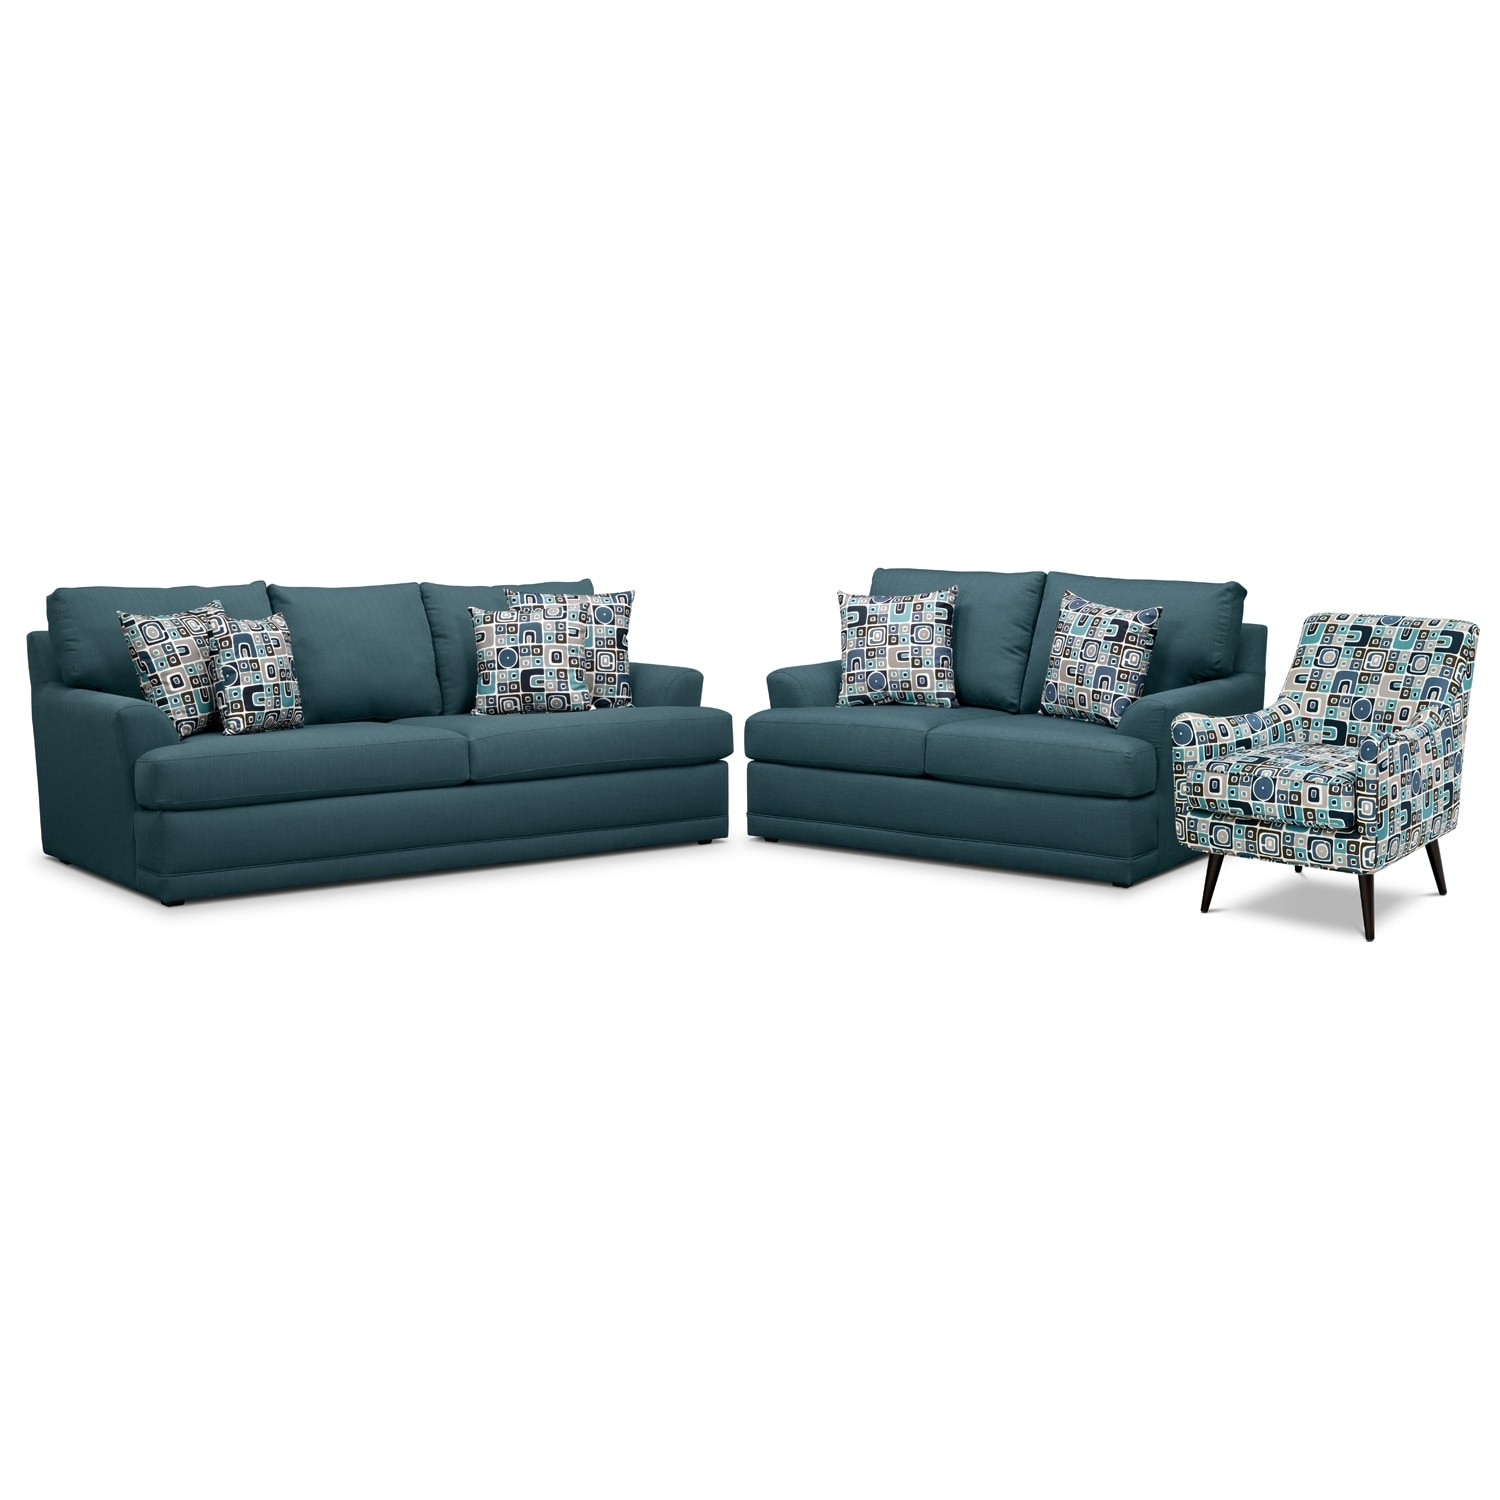 Living Room Furniture - Kismet 3 Pc. Sleeper Living Room with Accent Chair and Innerspring Mattress - Teal